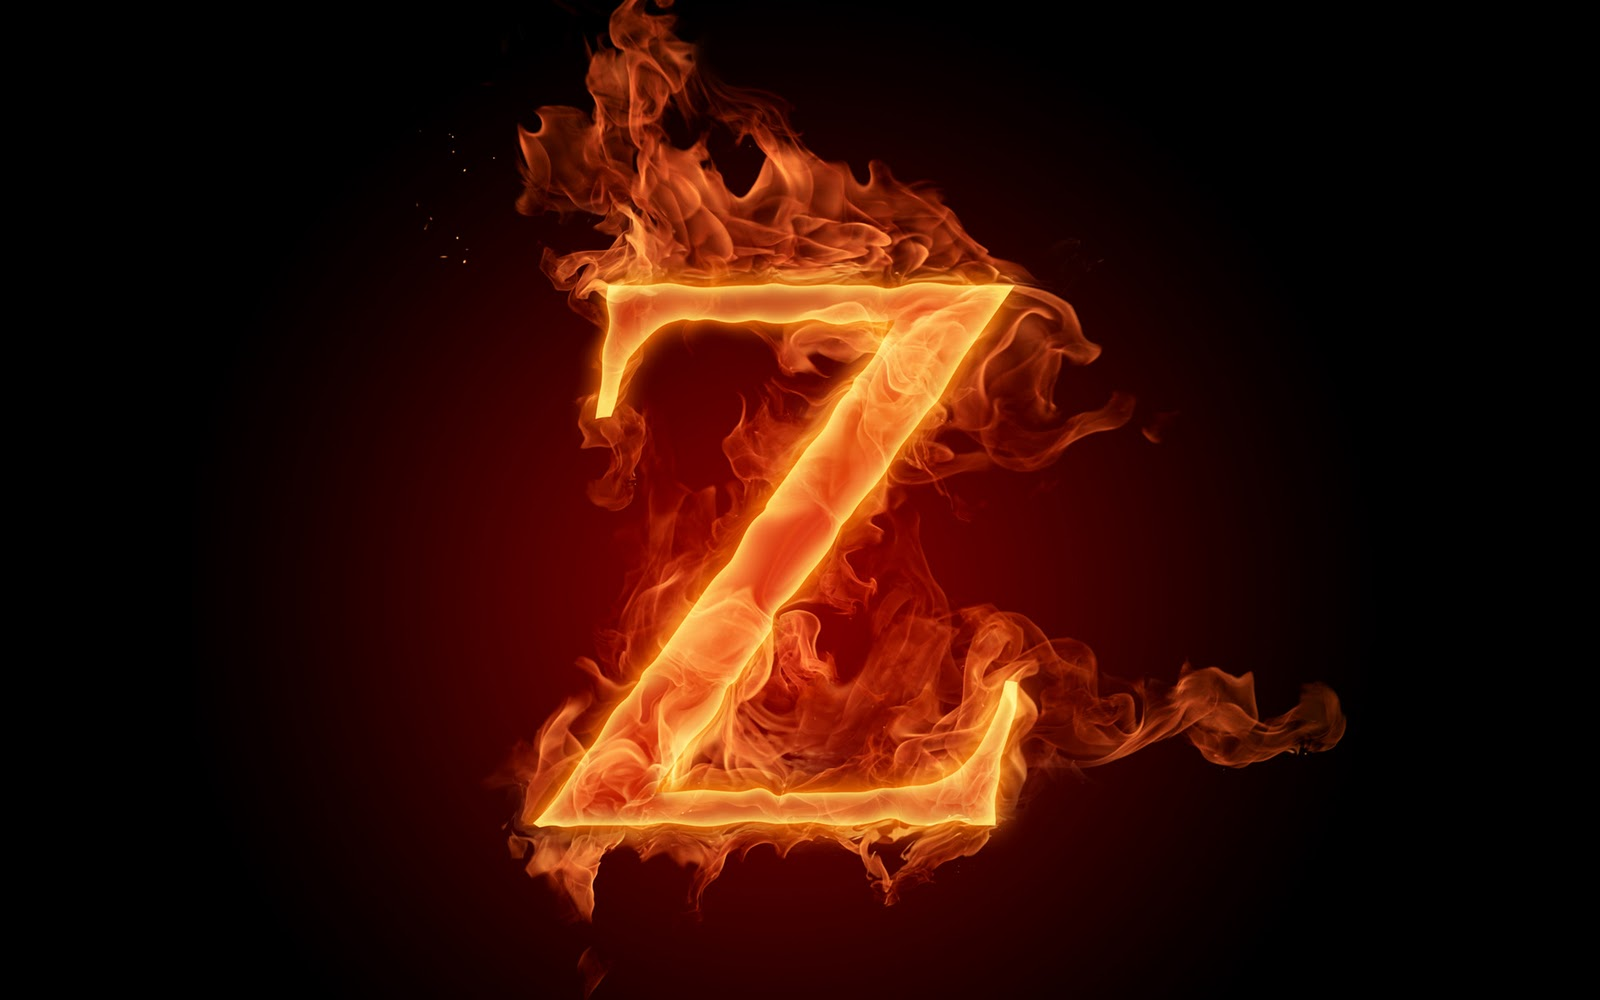 http://2.bp.blogspot.com/-tucbCmLWQSg/TvshrzdMg5I/AAAAAAAAL84/9L5aOb5EfDs/s1600/the-fiery-english-alphabet-picture-z_1920x1200_73640.jpg